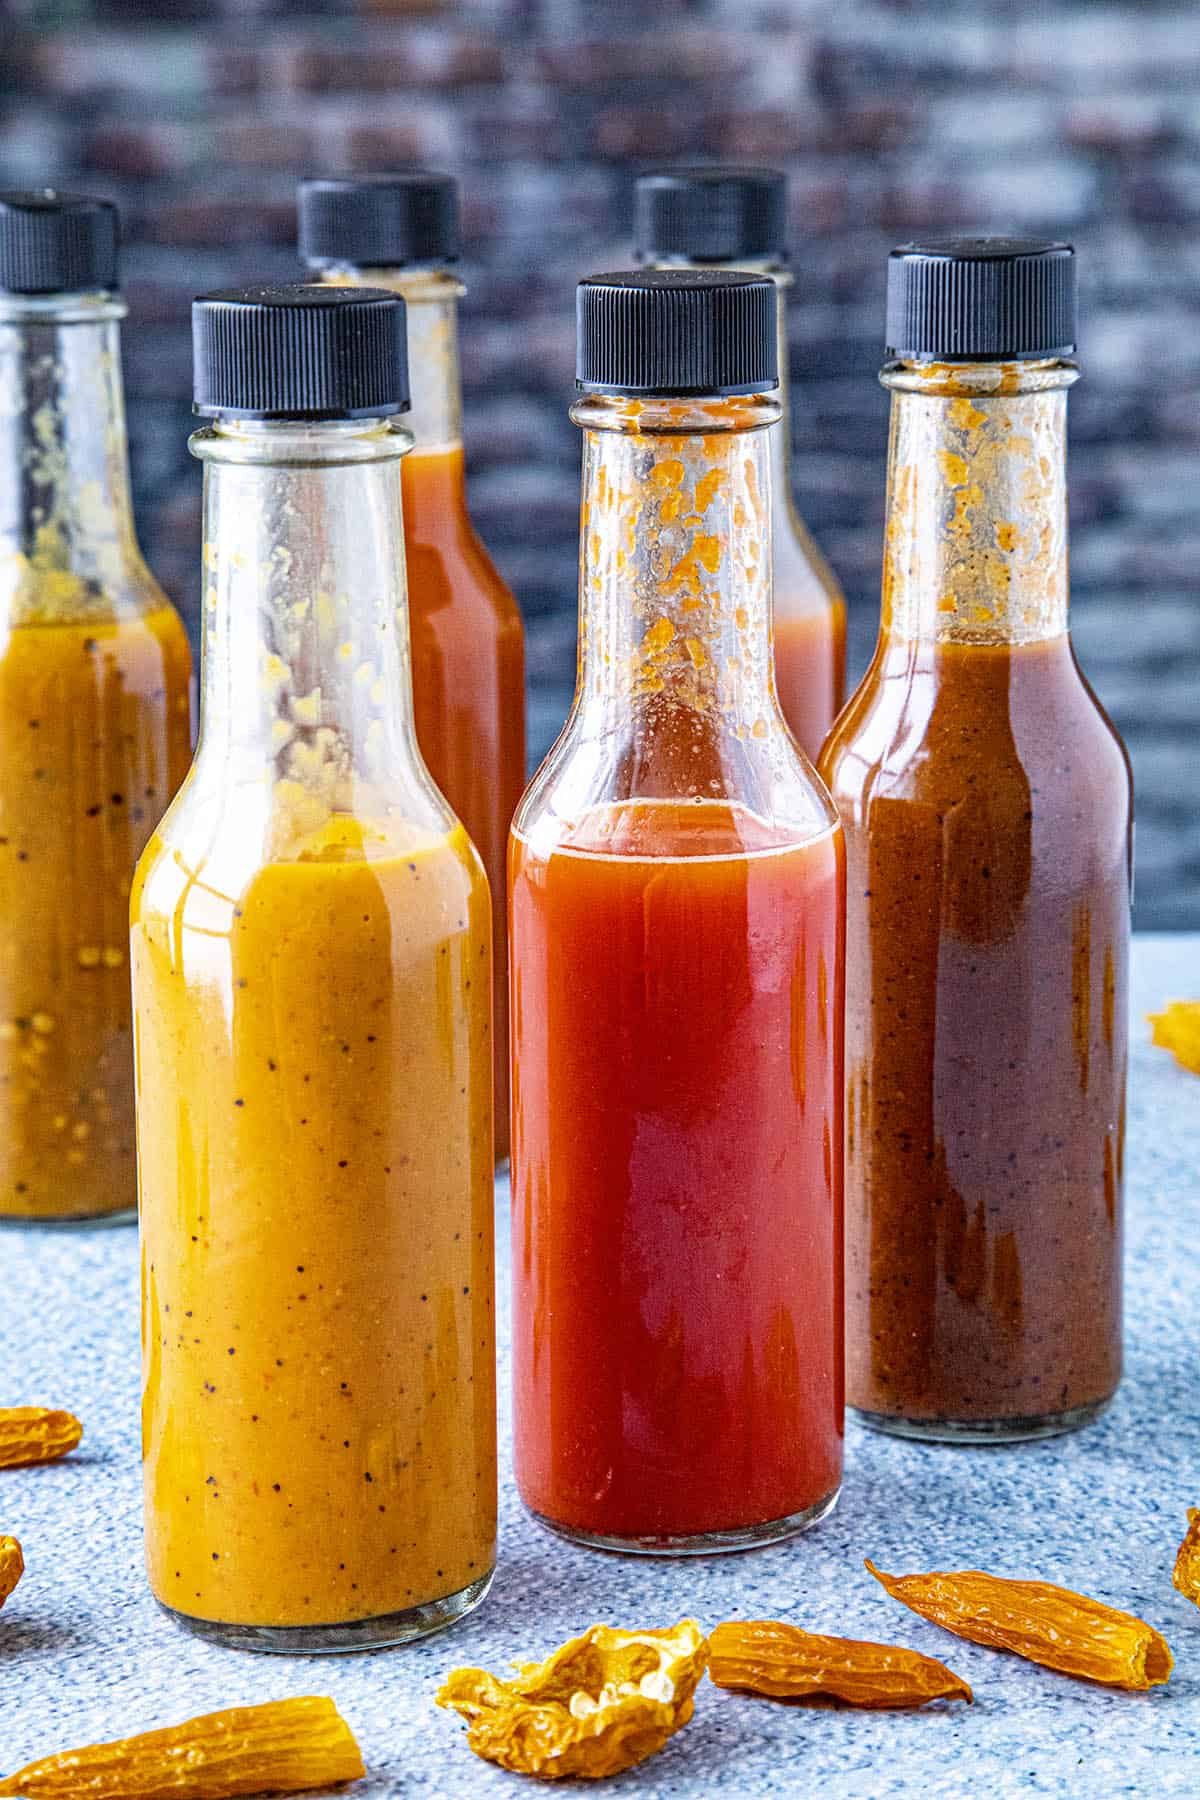 How to Make Hot Sauce from Chili Powders